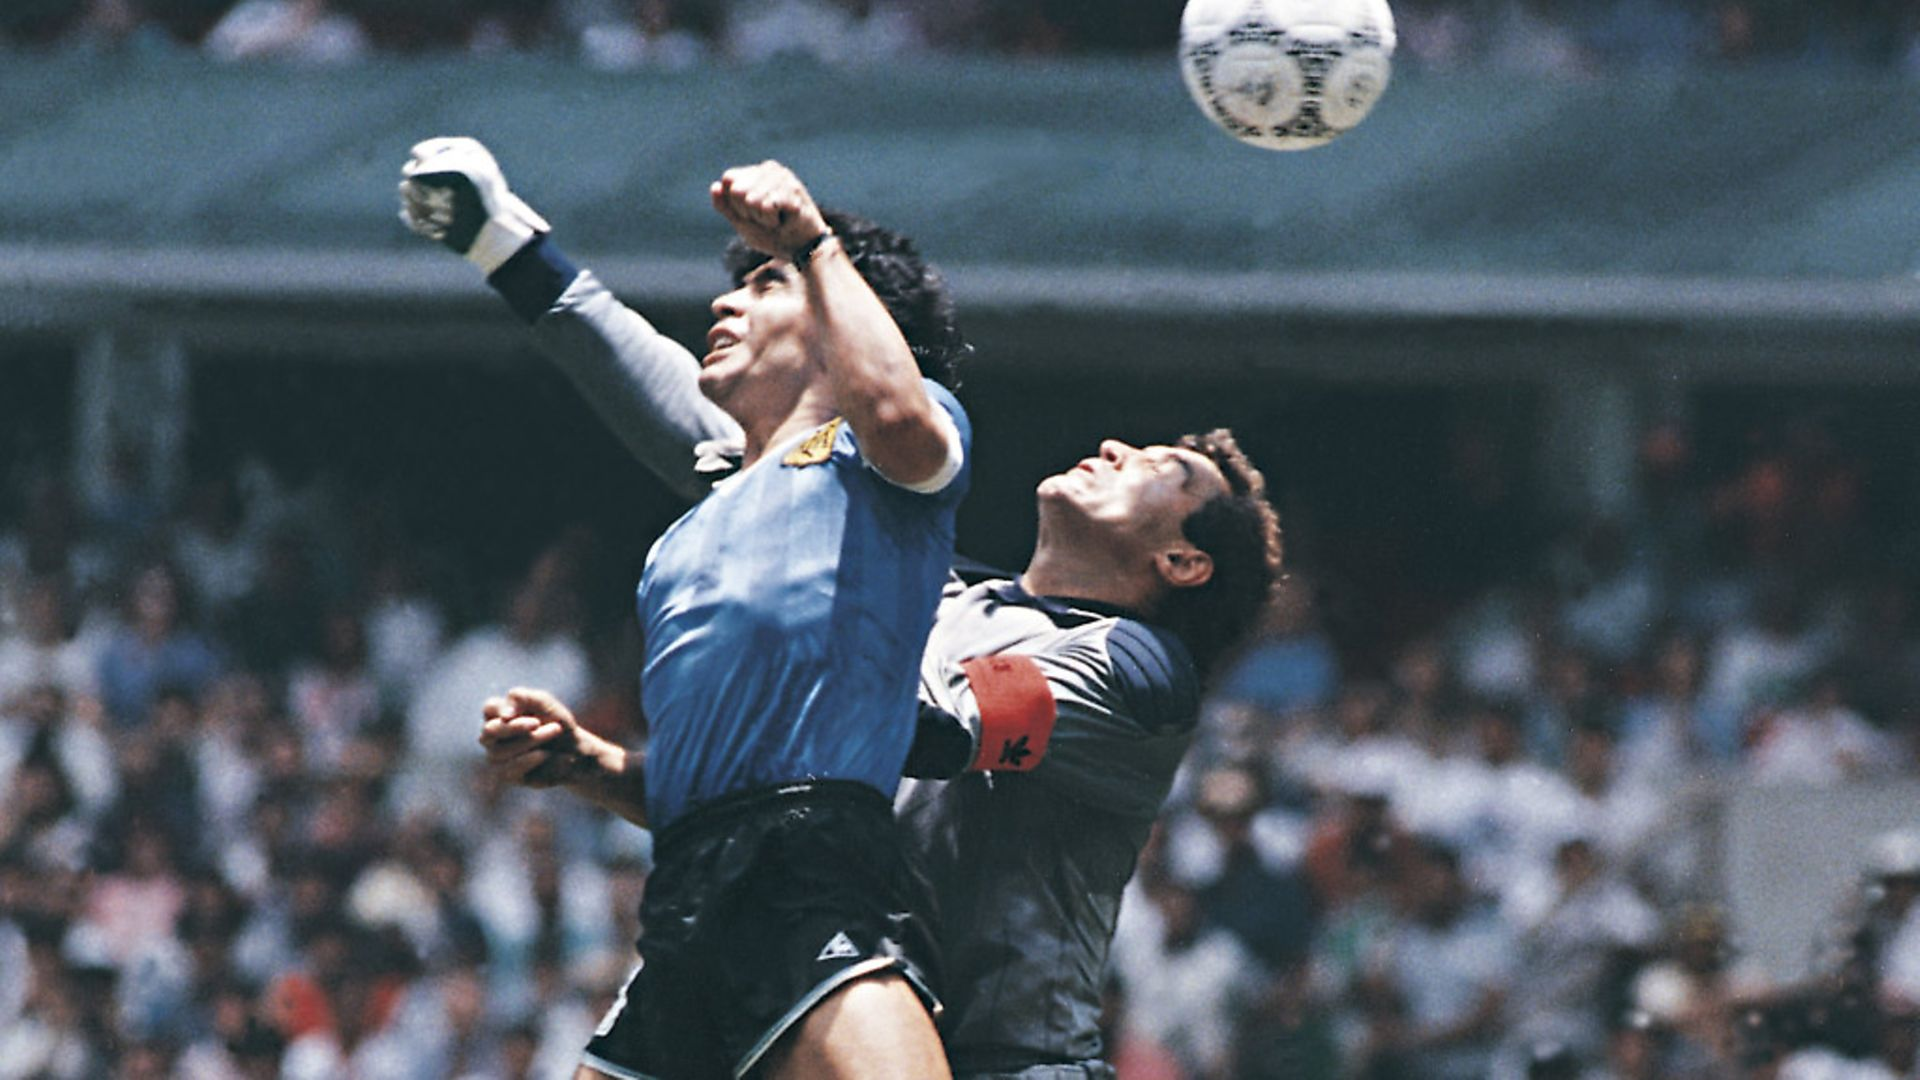 MEXICO CITY, MEXICO - JUNE 22: Diego Maradona of Argentina uses his hand to score the first goal of his team during a 1986 FIFA World Cup Quarter Final match between Argentina and England at Azteca Stadium on June 22, 1986 in Mexico City, Mexico. Maradona later claimed that the goal was scored by 'The Hand Of God'. (Photo by Archivo El Grafico/Getty Images) - Credit: Getty Images